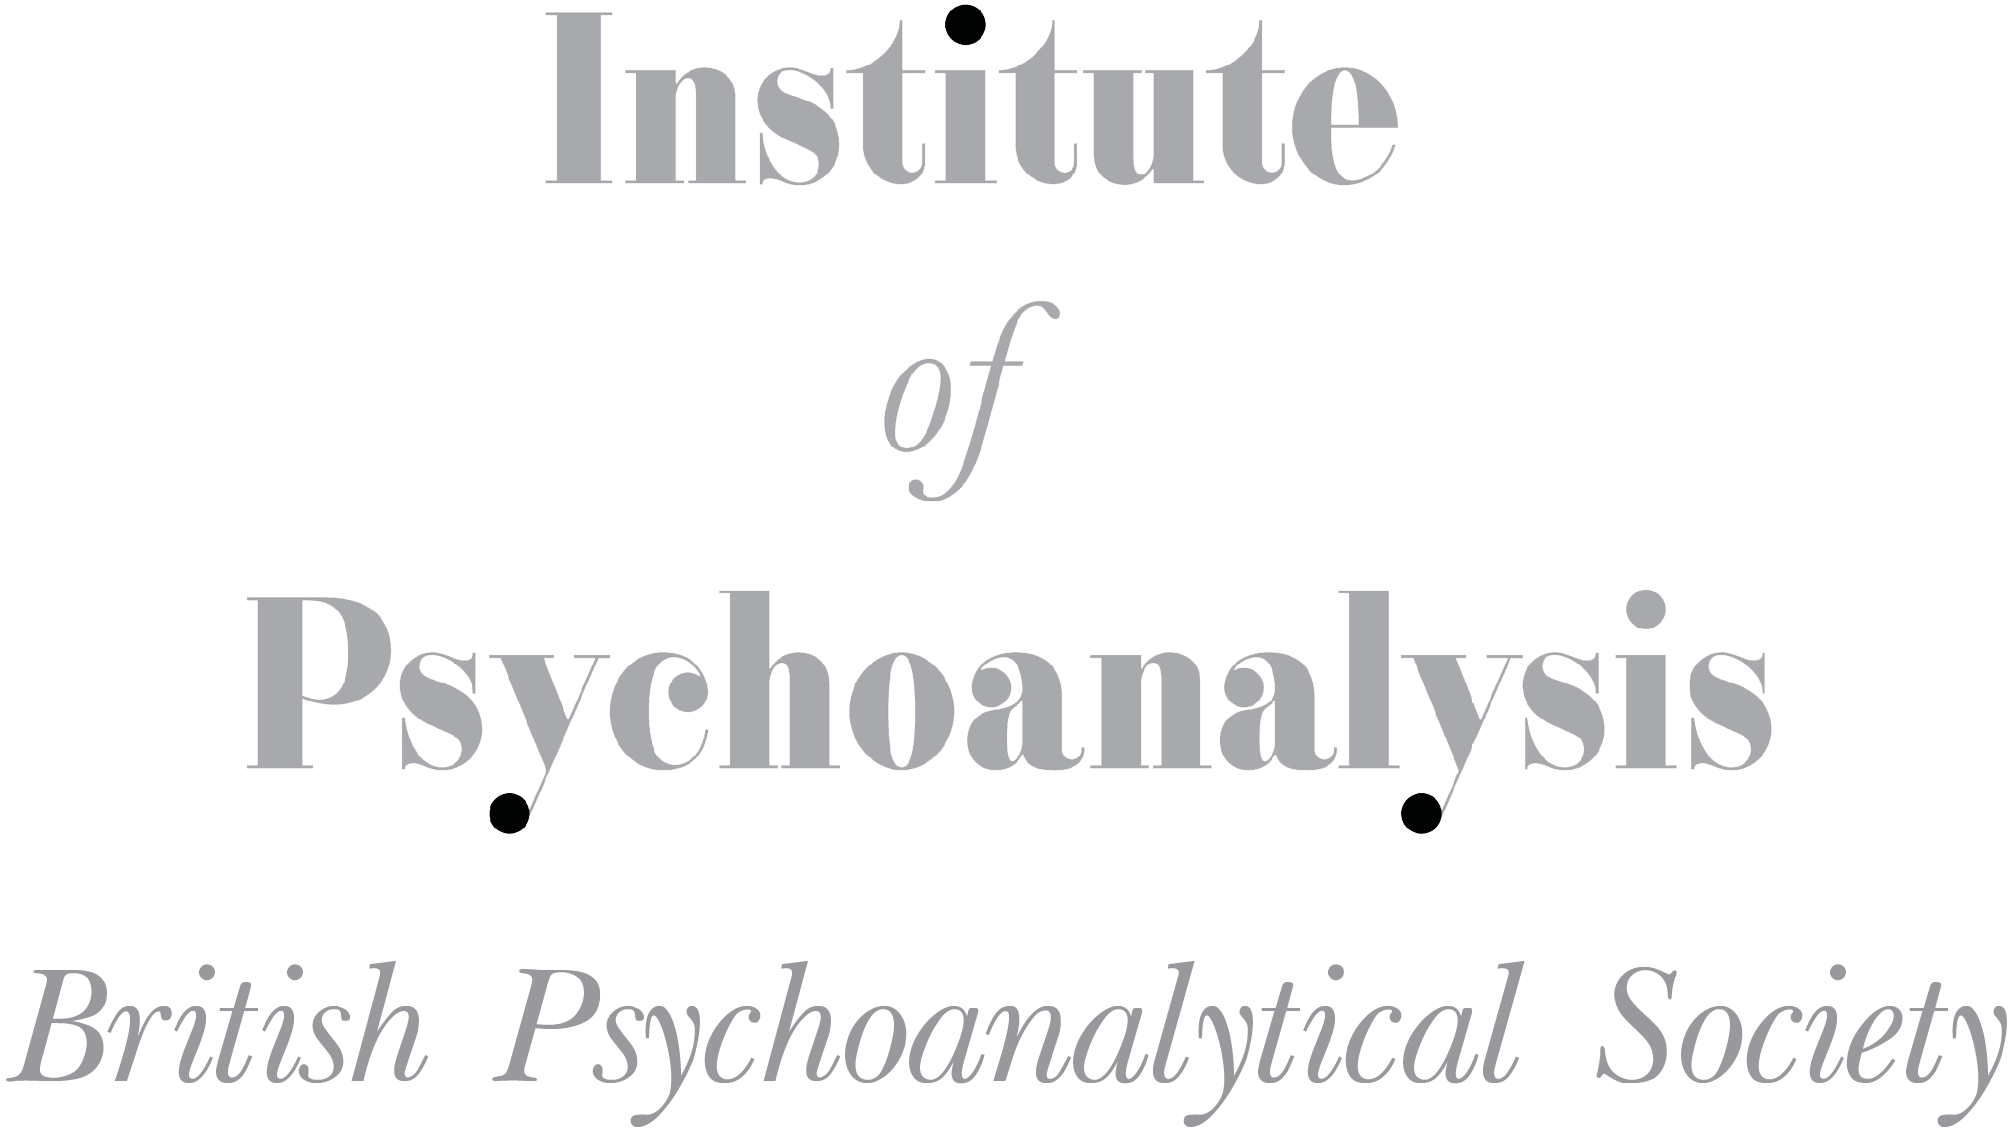 the primary goal of psychoanalysis is to